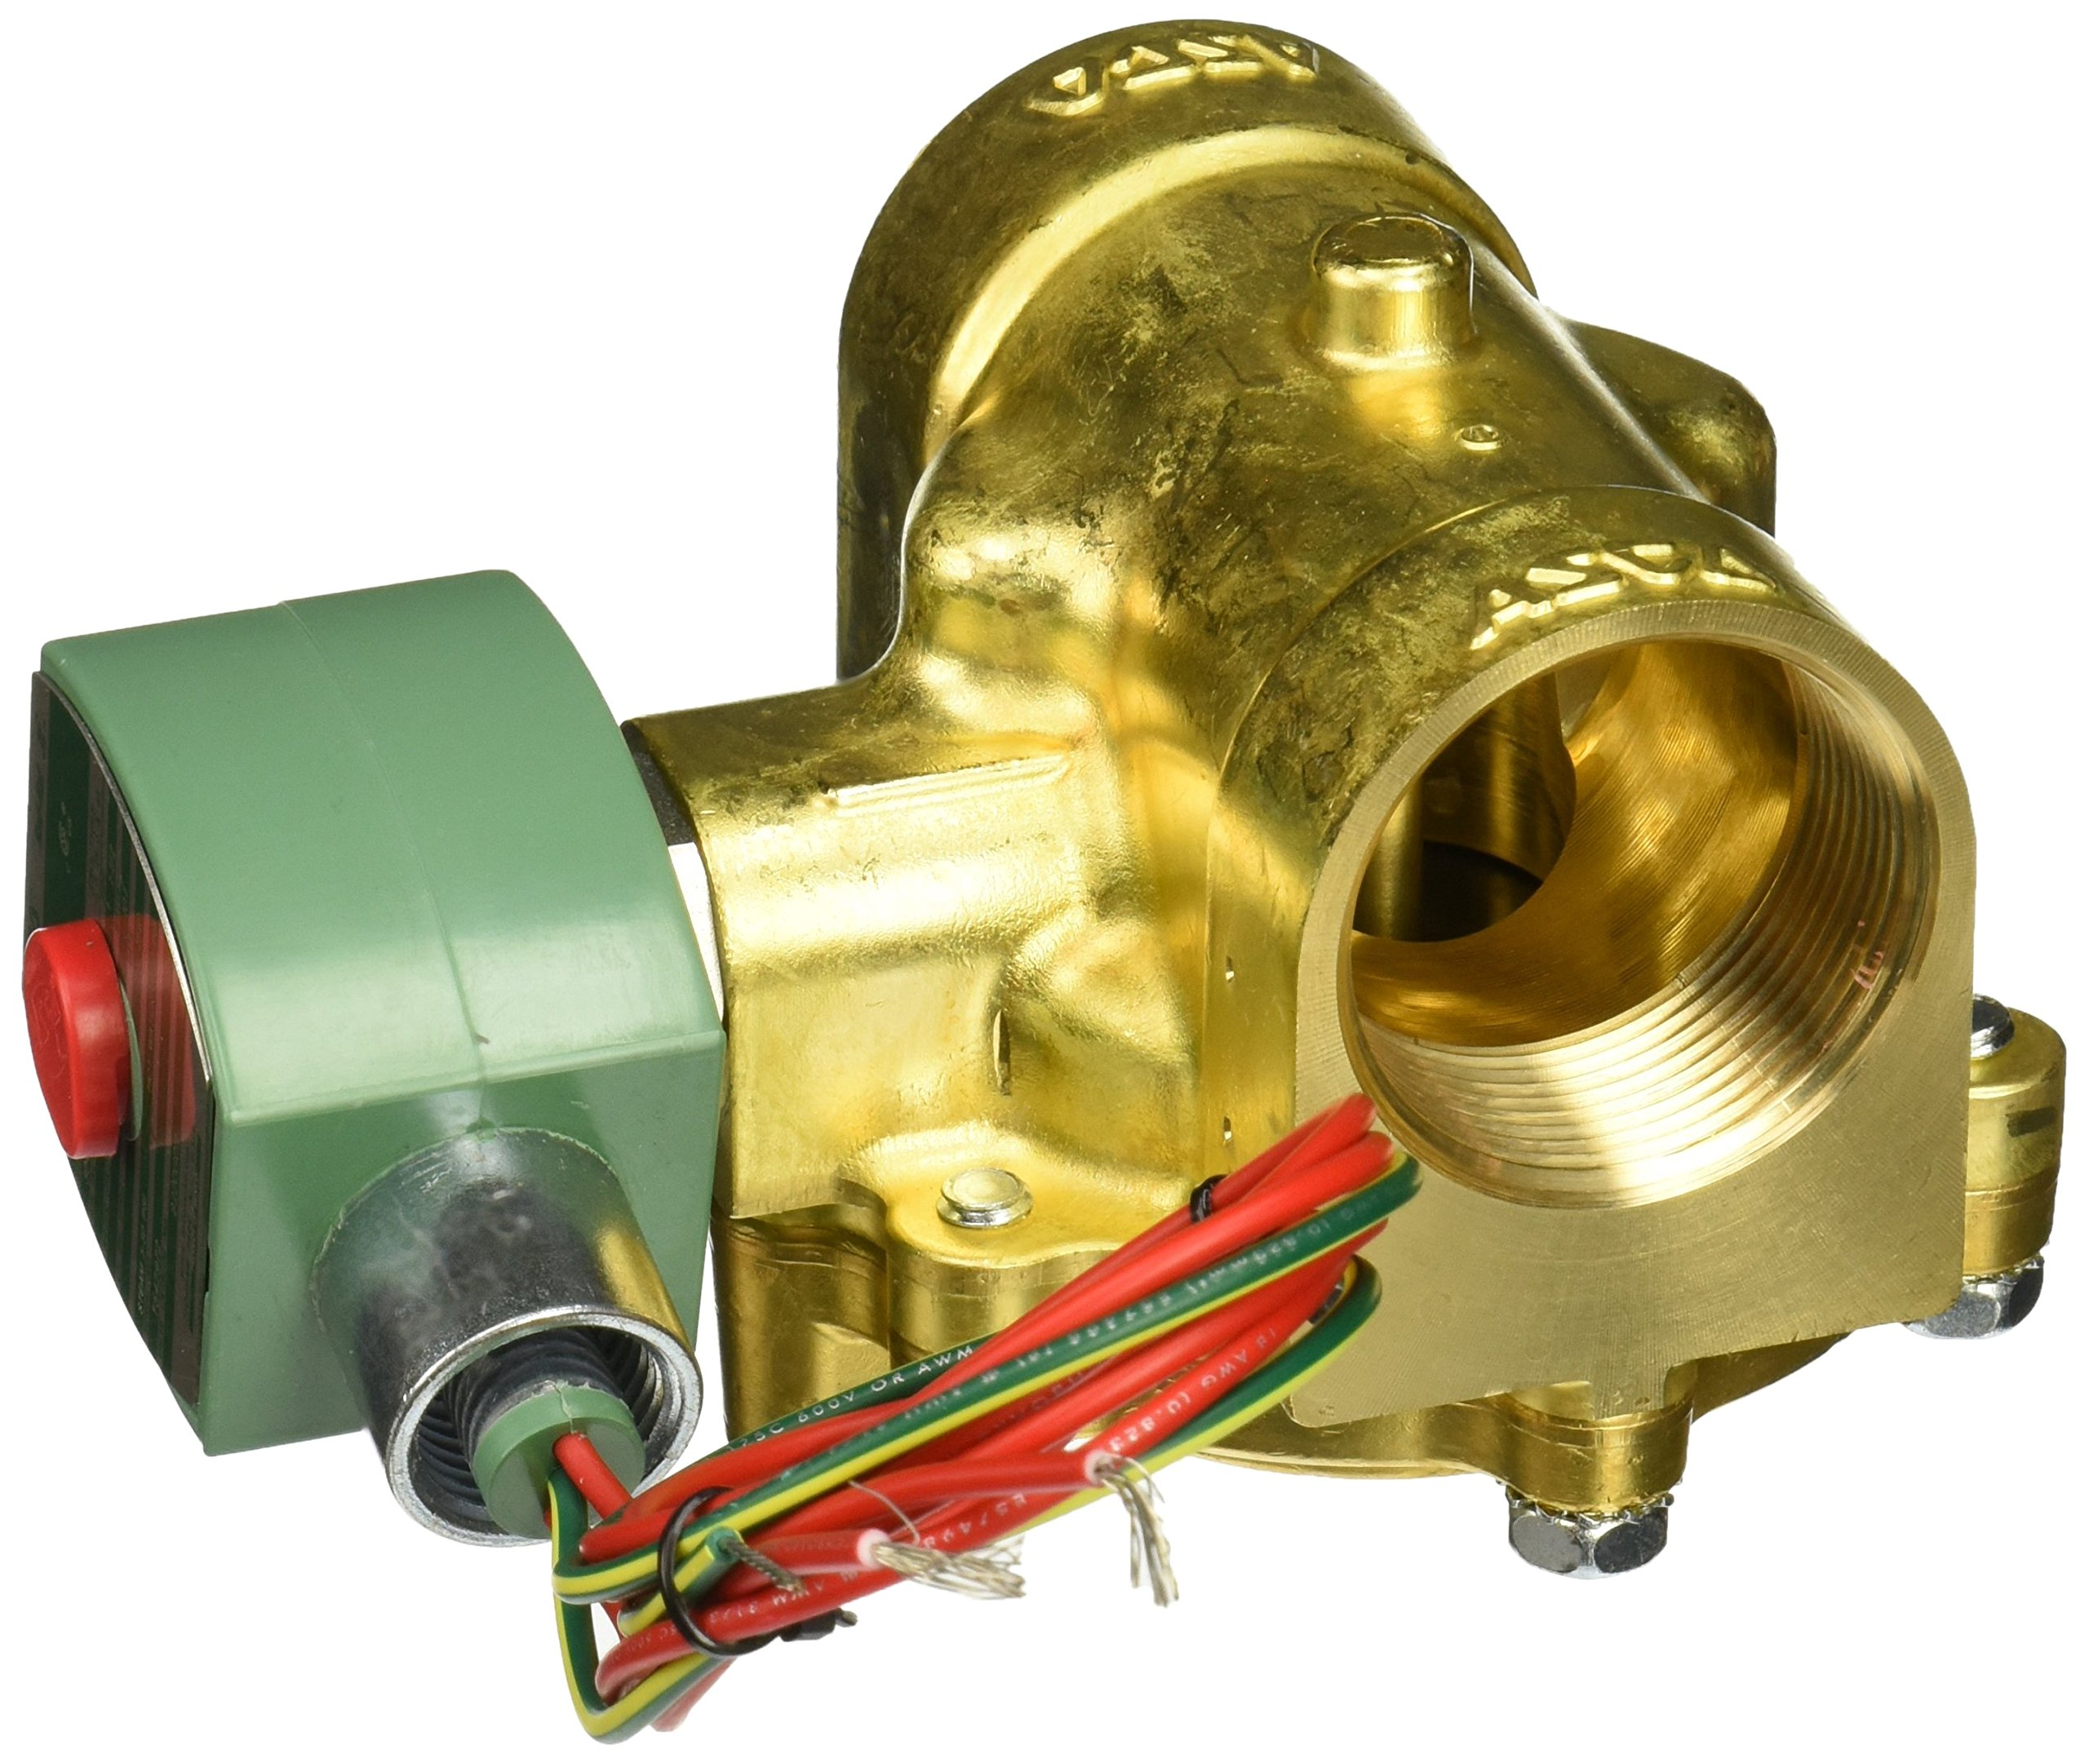 ASCO 8220G011 -120/60,110/50 Brass Body Hot Water and Steam Pilot Operated Diaphragm and Piston Valve, 50 psi Maximum Steam Operating Pressure, 1-1/2'' Pipe Size, 2-Way Normally Closed, EPDM Sealing, 1